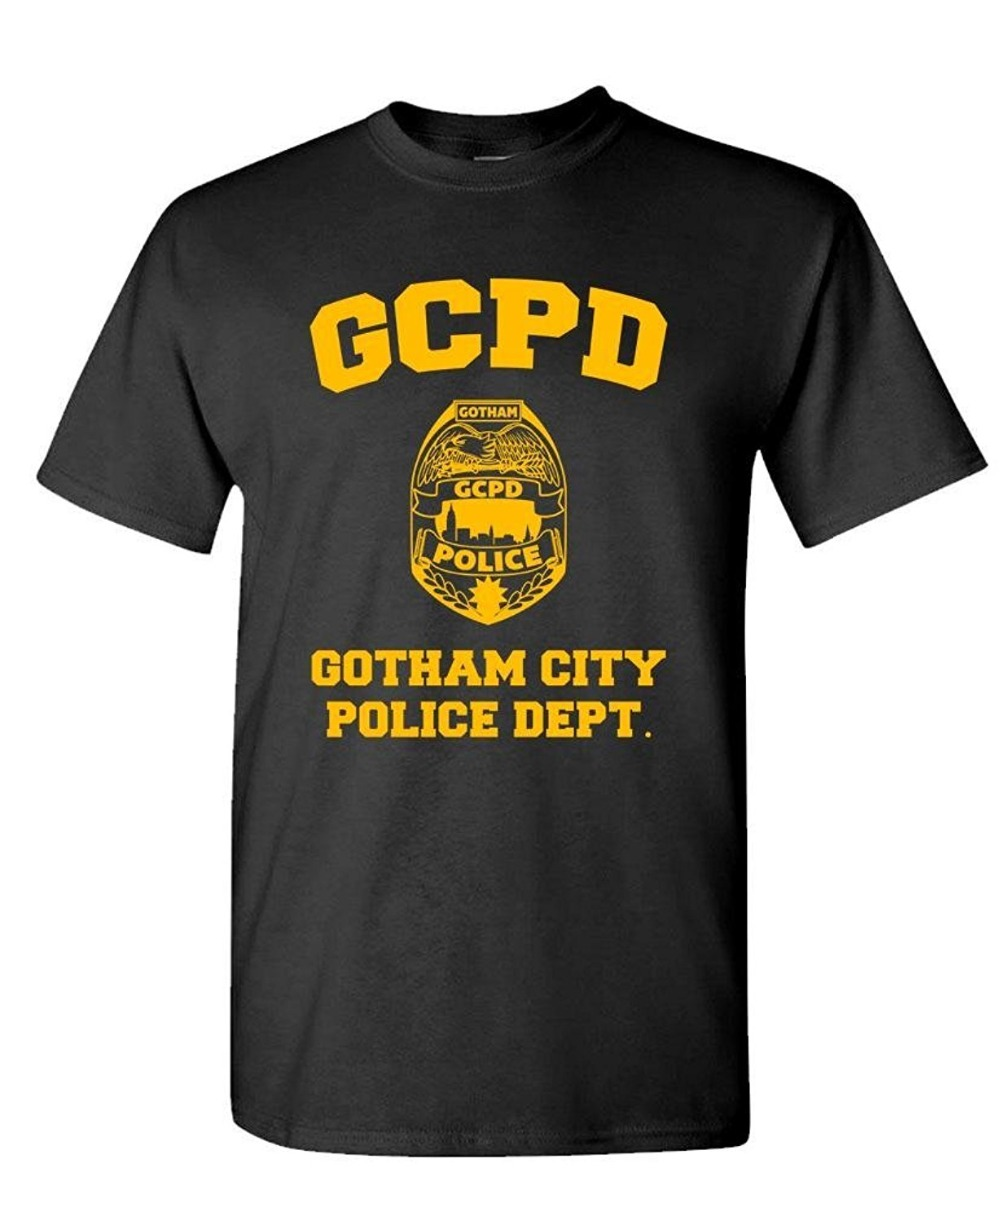 New Arrival Gotham City Police Dept - Arkham Game - Men's Cotton T-Shirt Male Tees Boy T-Shirt Tops Discounts T-Shirts Hoodies image